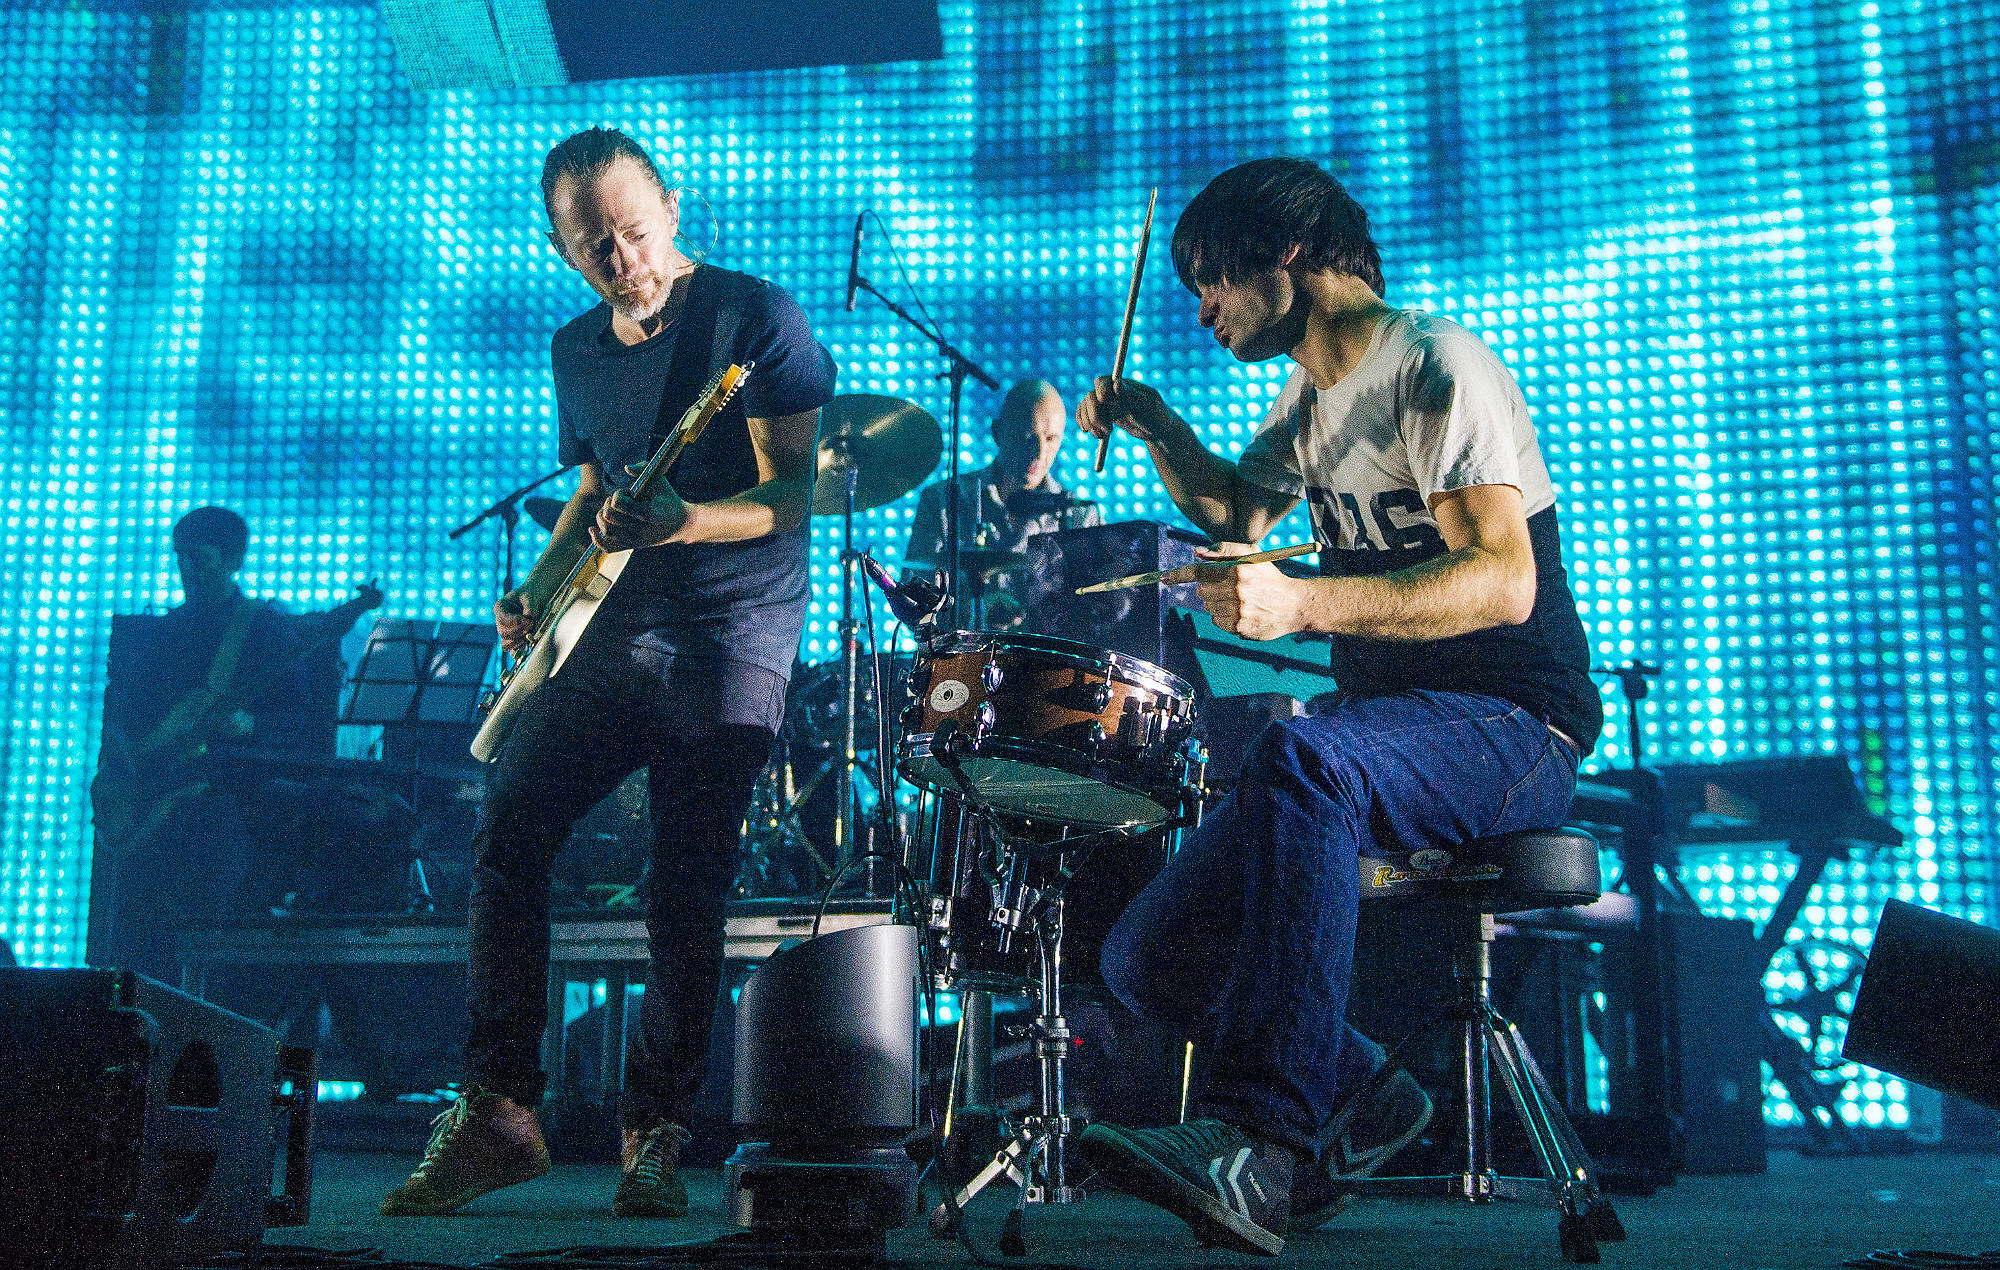 """Radiohead's Colin Greenwood says his """"heart sinks"""" at reality of post-Brexit touring"""